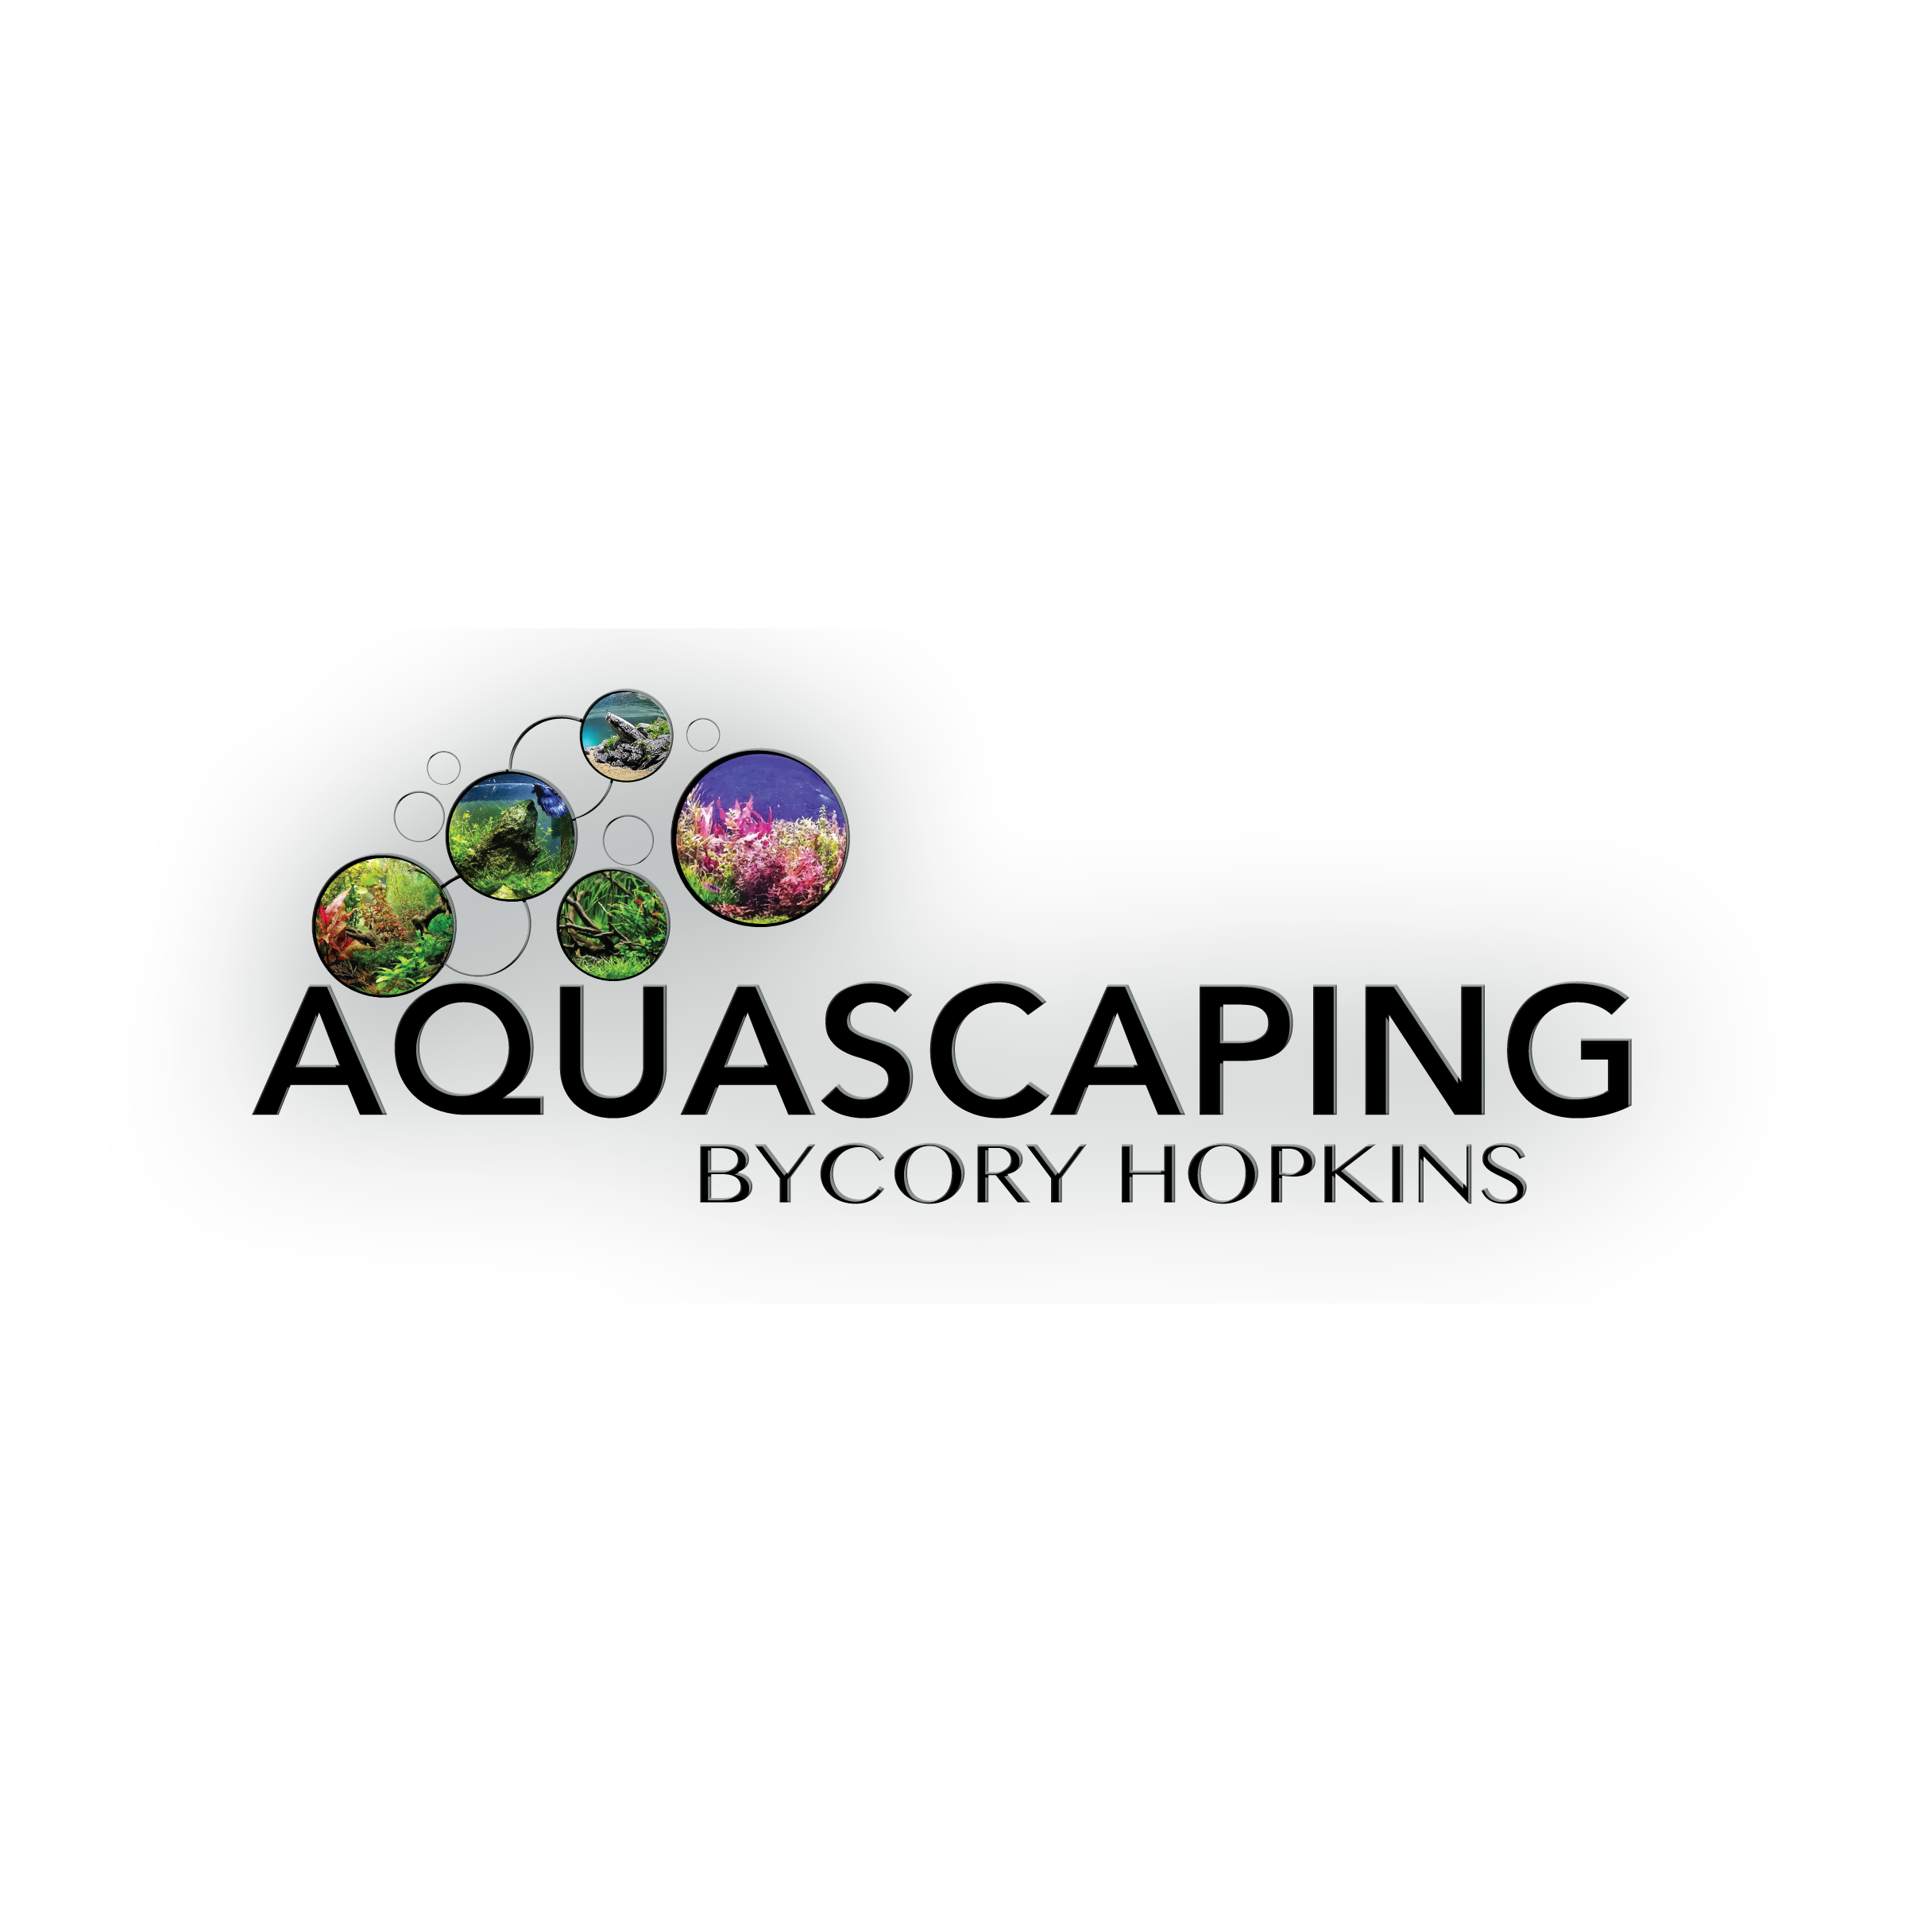 Aquascaping by Cory Hopkins